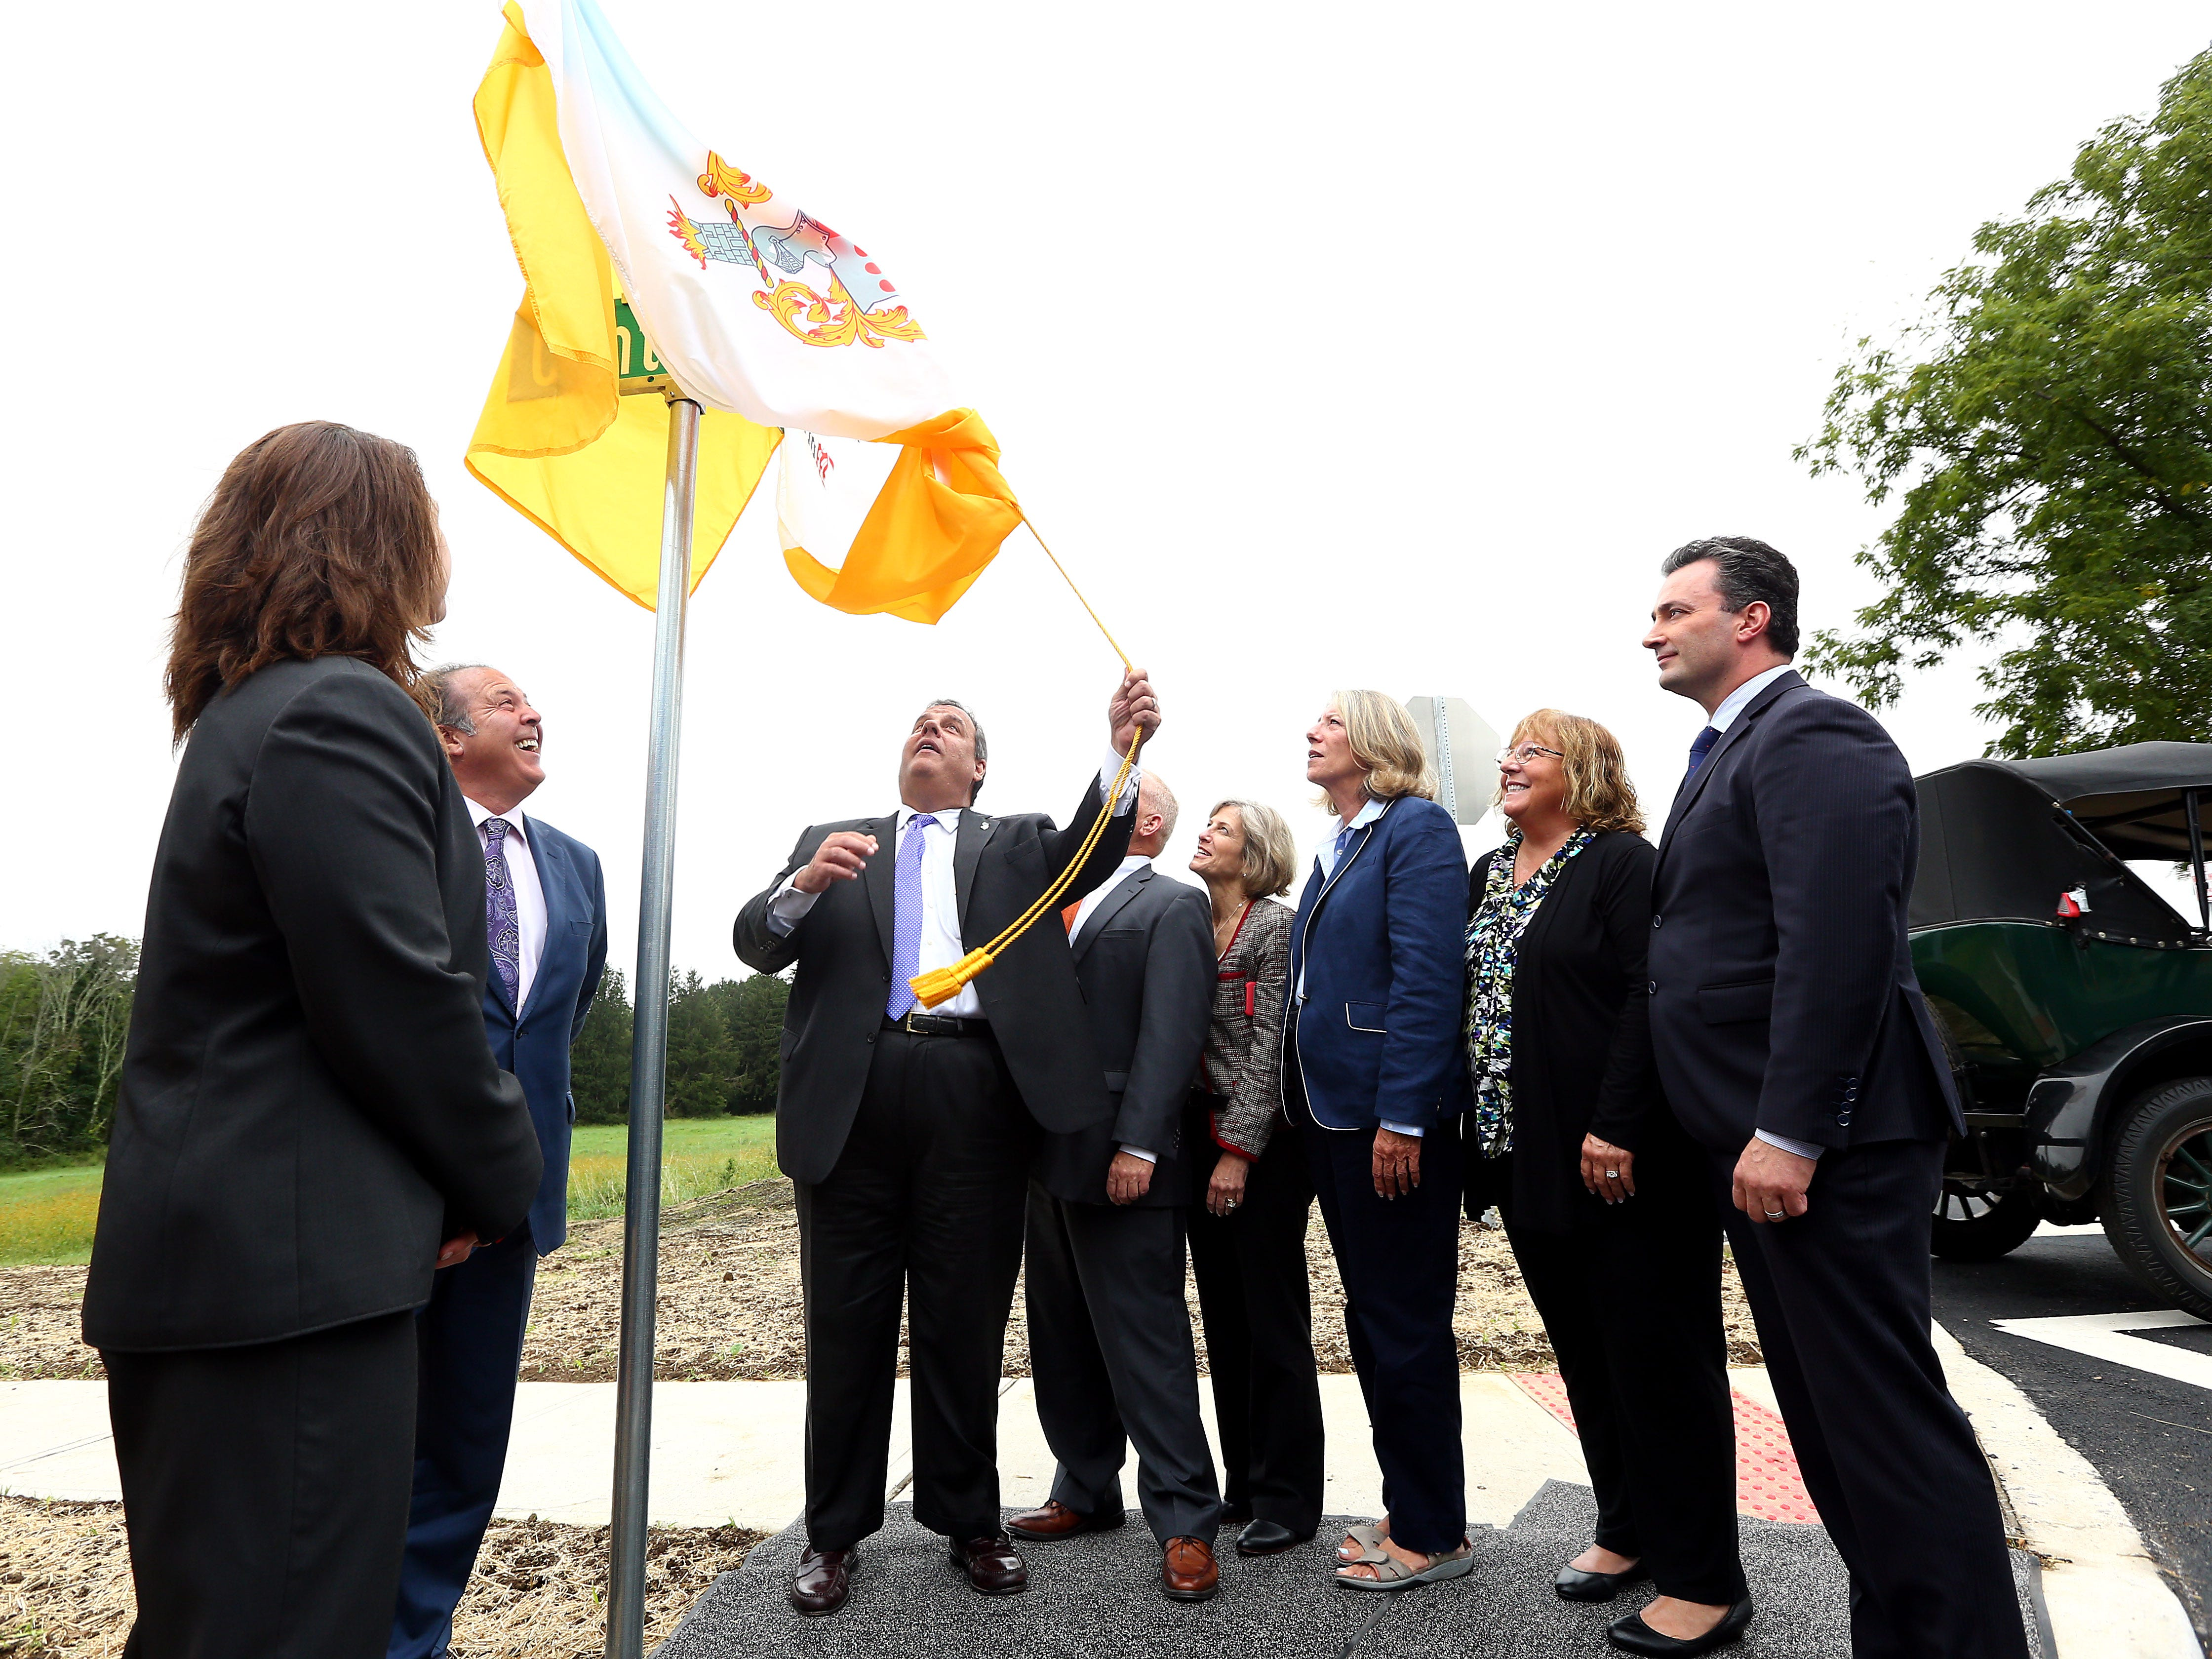 Former New Jersey Governor Chris Christie unveils the street sign as Morris County freeholders formally open Gov. Chris Christie Drive, a new main access road to Central Park of Morris County. September 12, 2018, Morris Plains, NJ